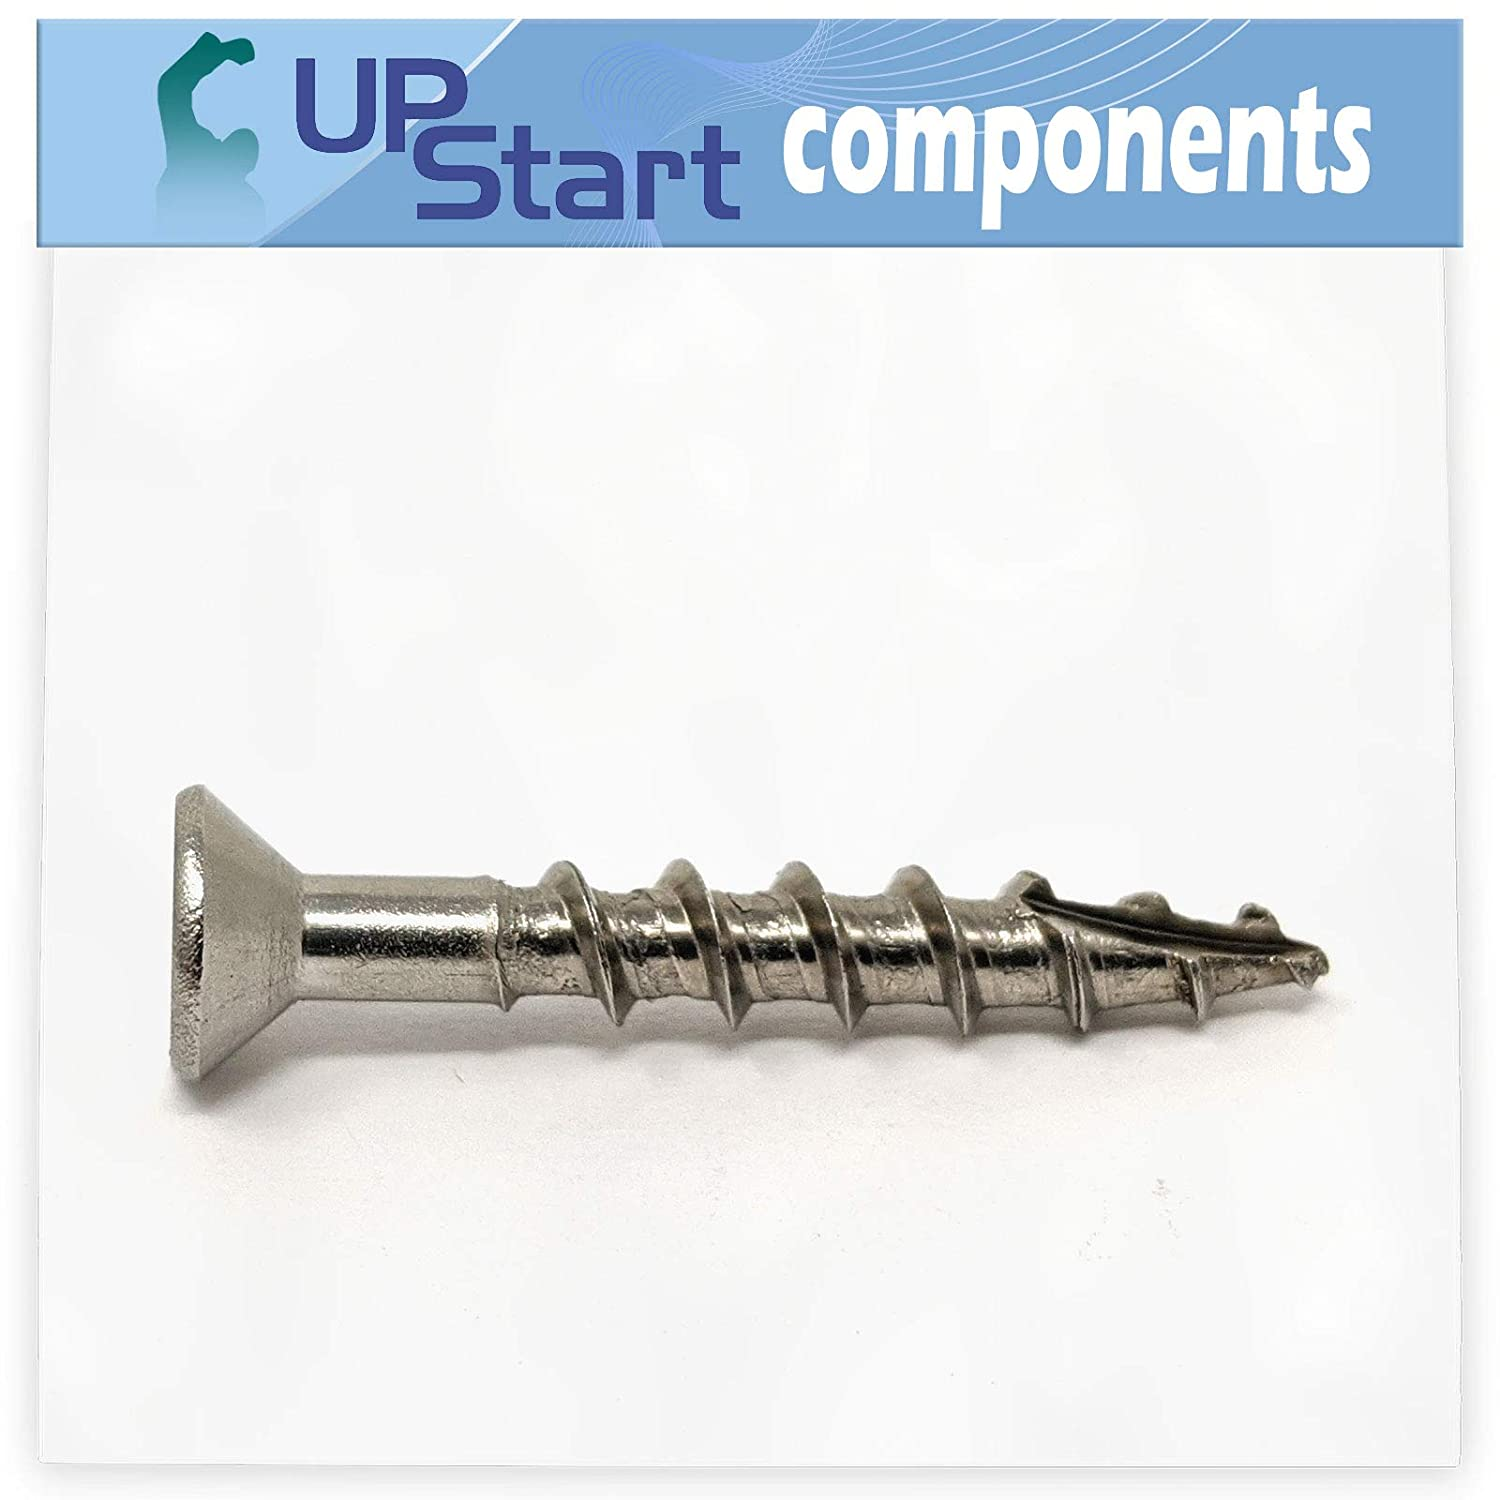 #8 x 1-1//4 Stainless Steel Deck Screws Self Tapping Square Drive Head Screws 25pcs Type 17 Wood Cutting Point